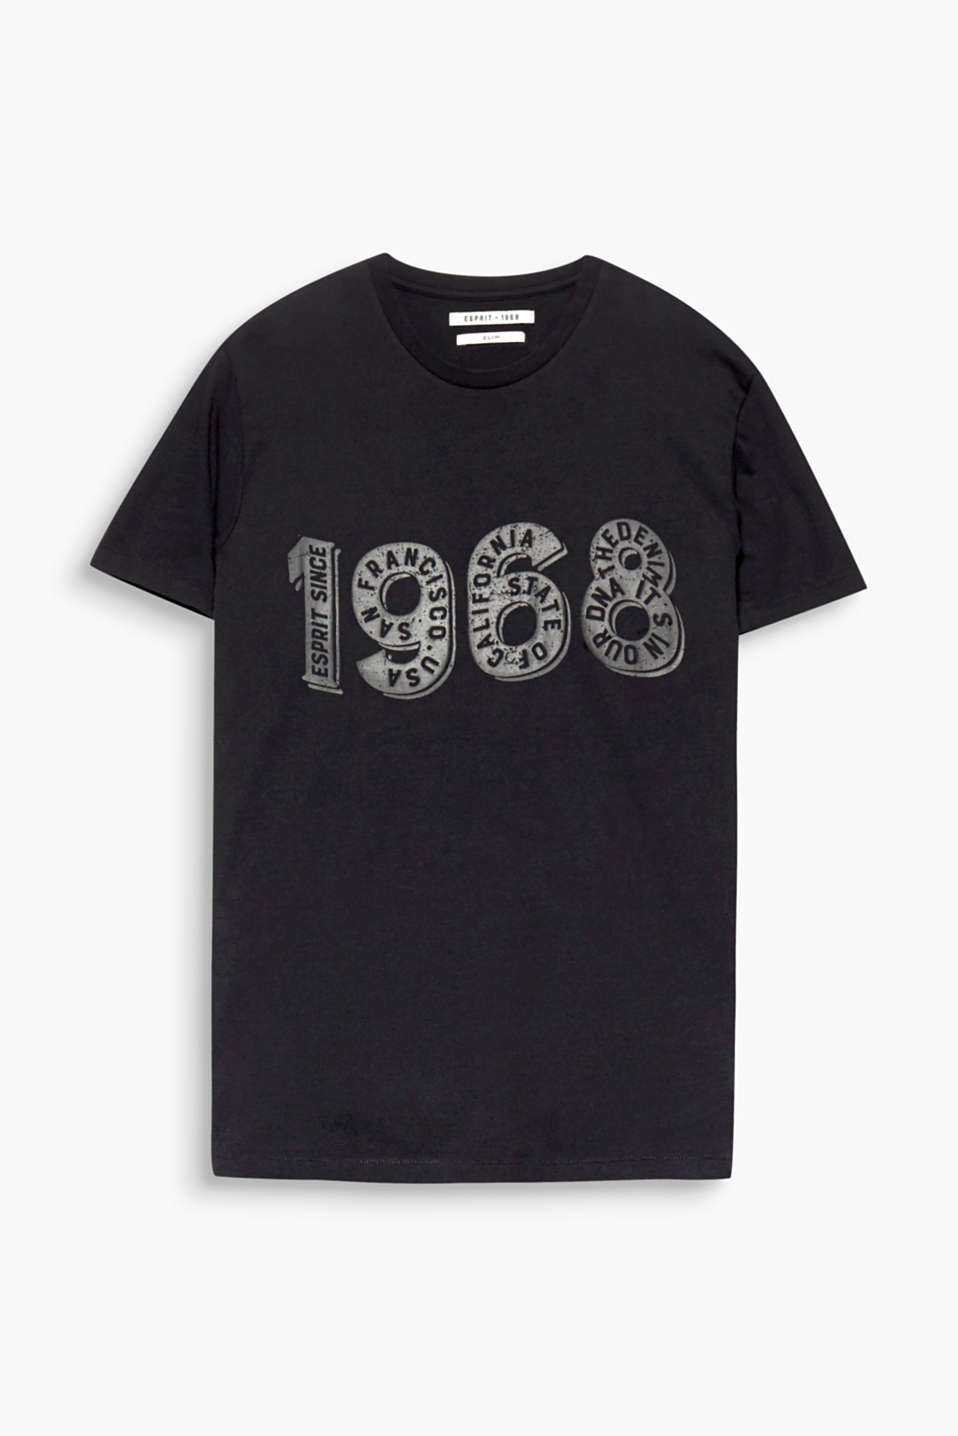 An Esprit heritage piece! This T-shirt boasts a logo print and a high-quality dye finish.